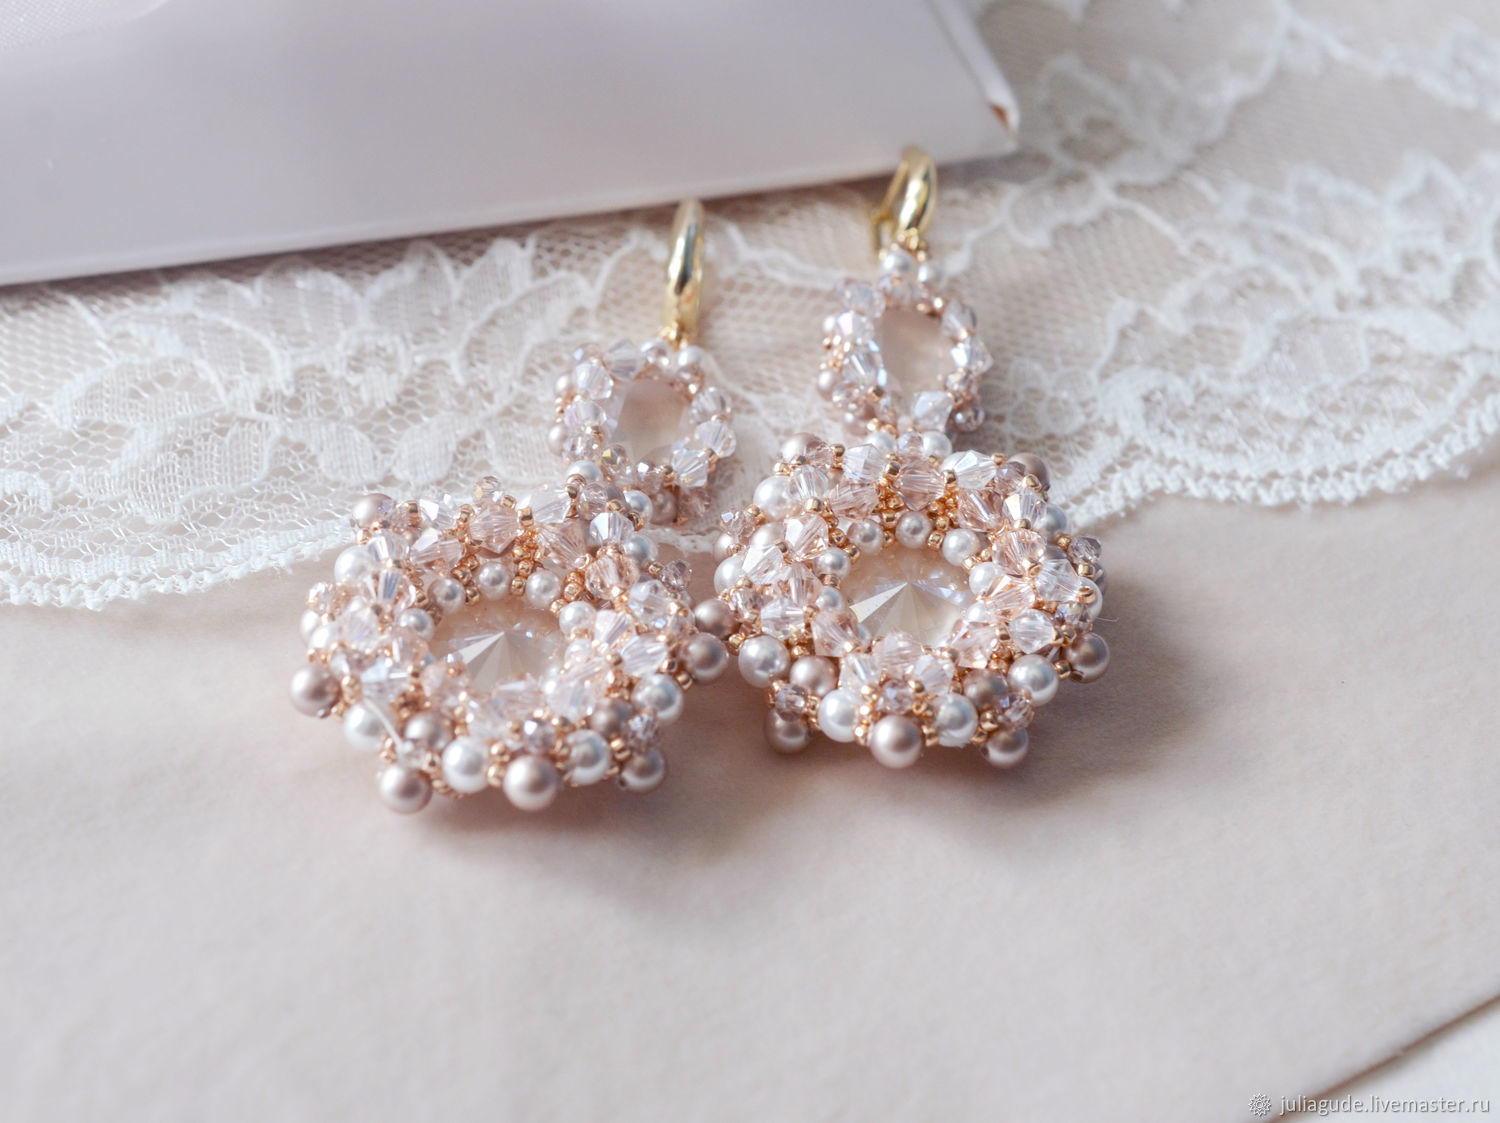 Wedding earrings for bride from swarovski elements shop online on wedding jewelry handmade livemaster handmade buy wedding earrings for bride from swarovski elements junglespirit Image collections